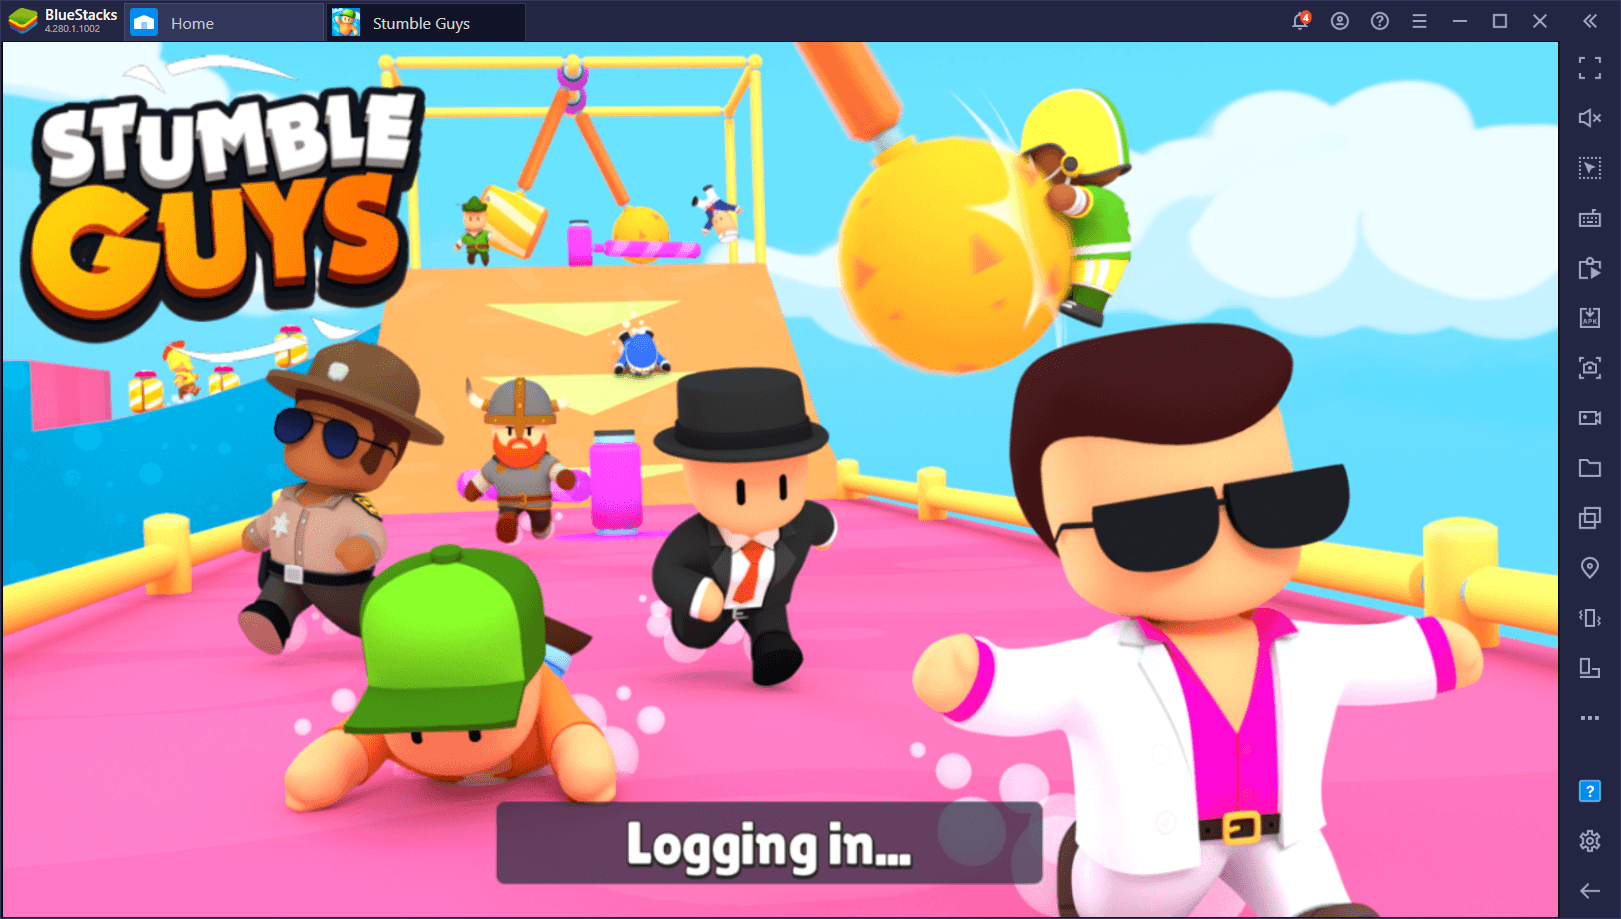 Stumble Guys – How to Configure Your BlueStacks to Get the Authentic 'Fall Guys' Expxcerience